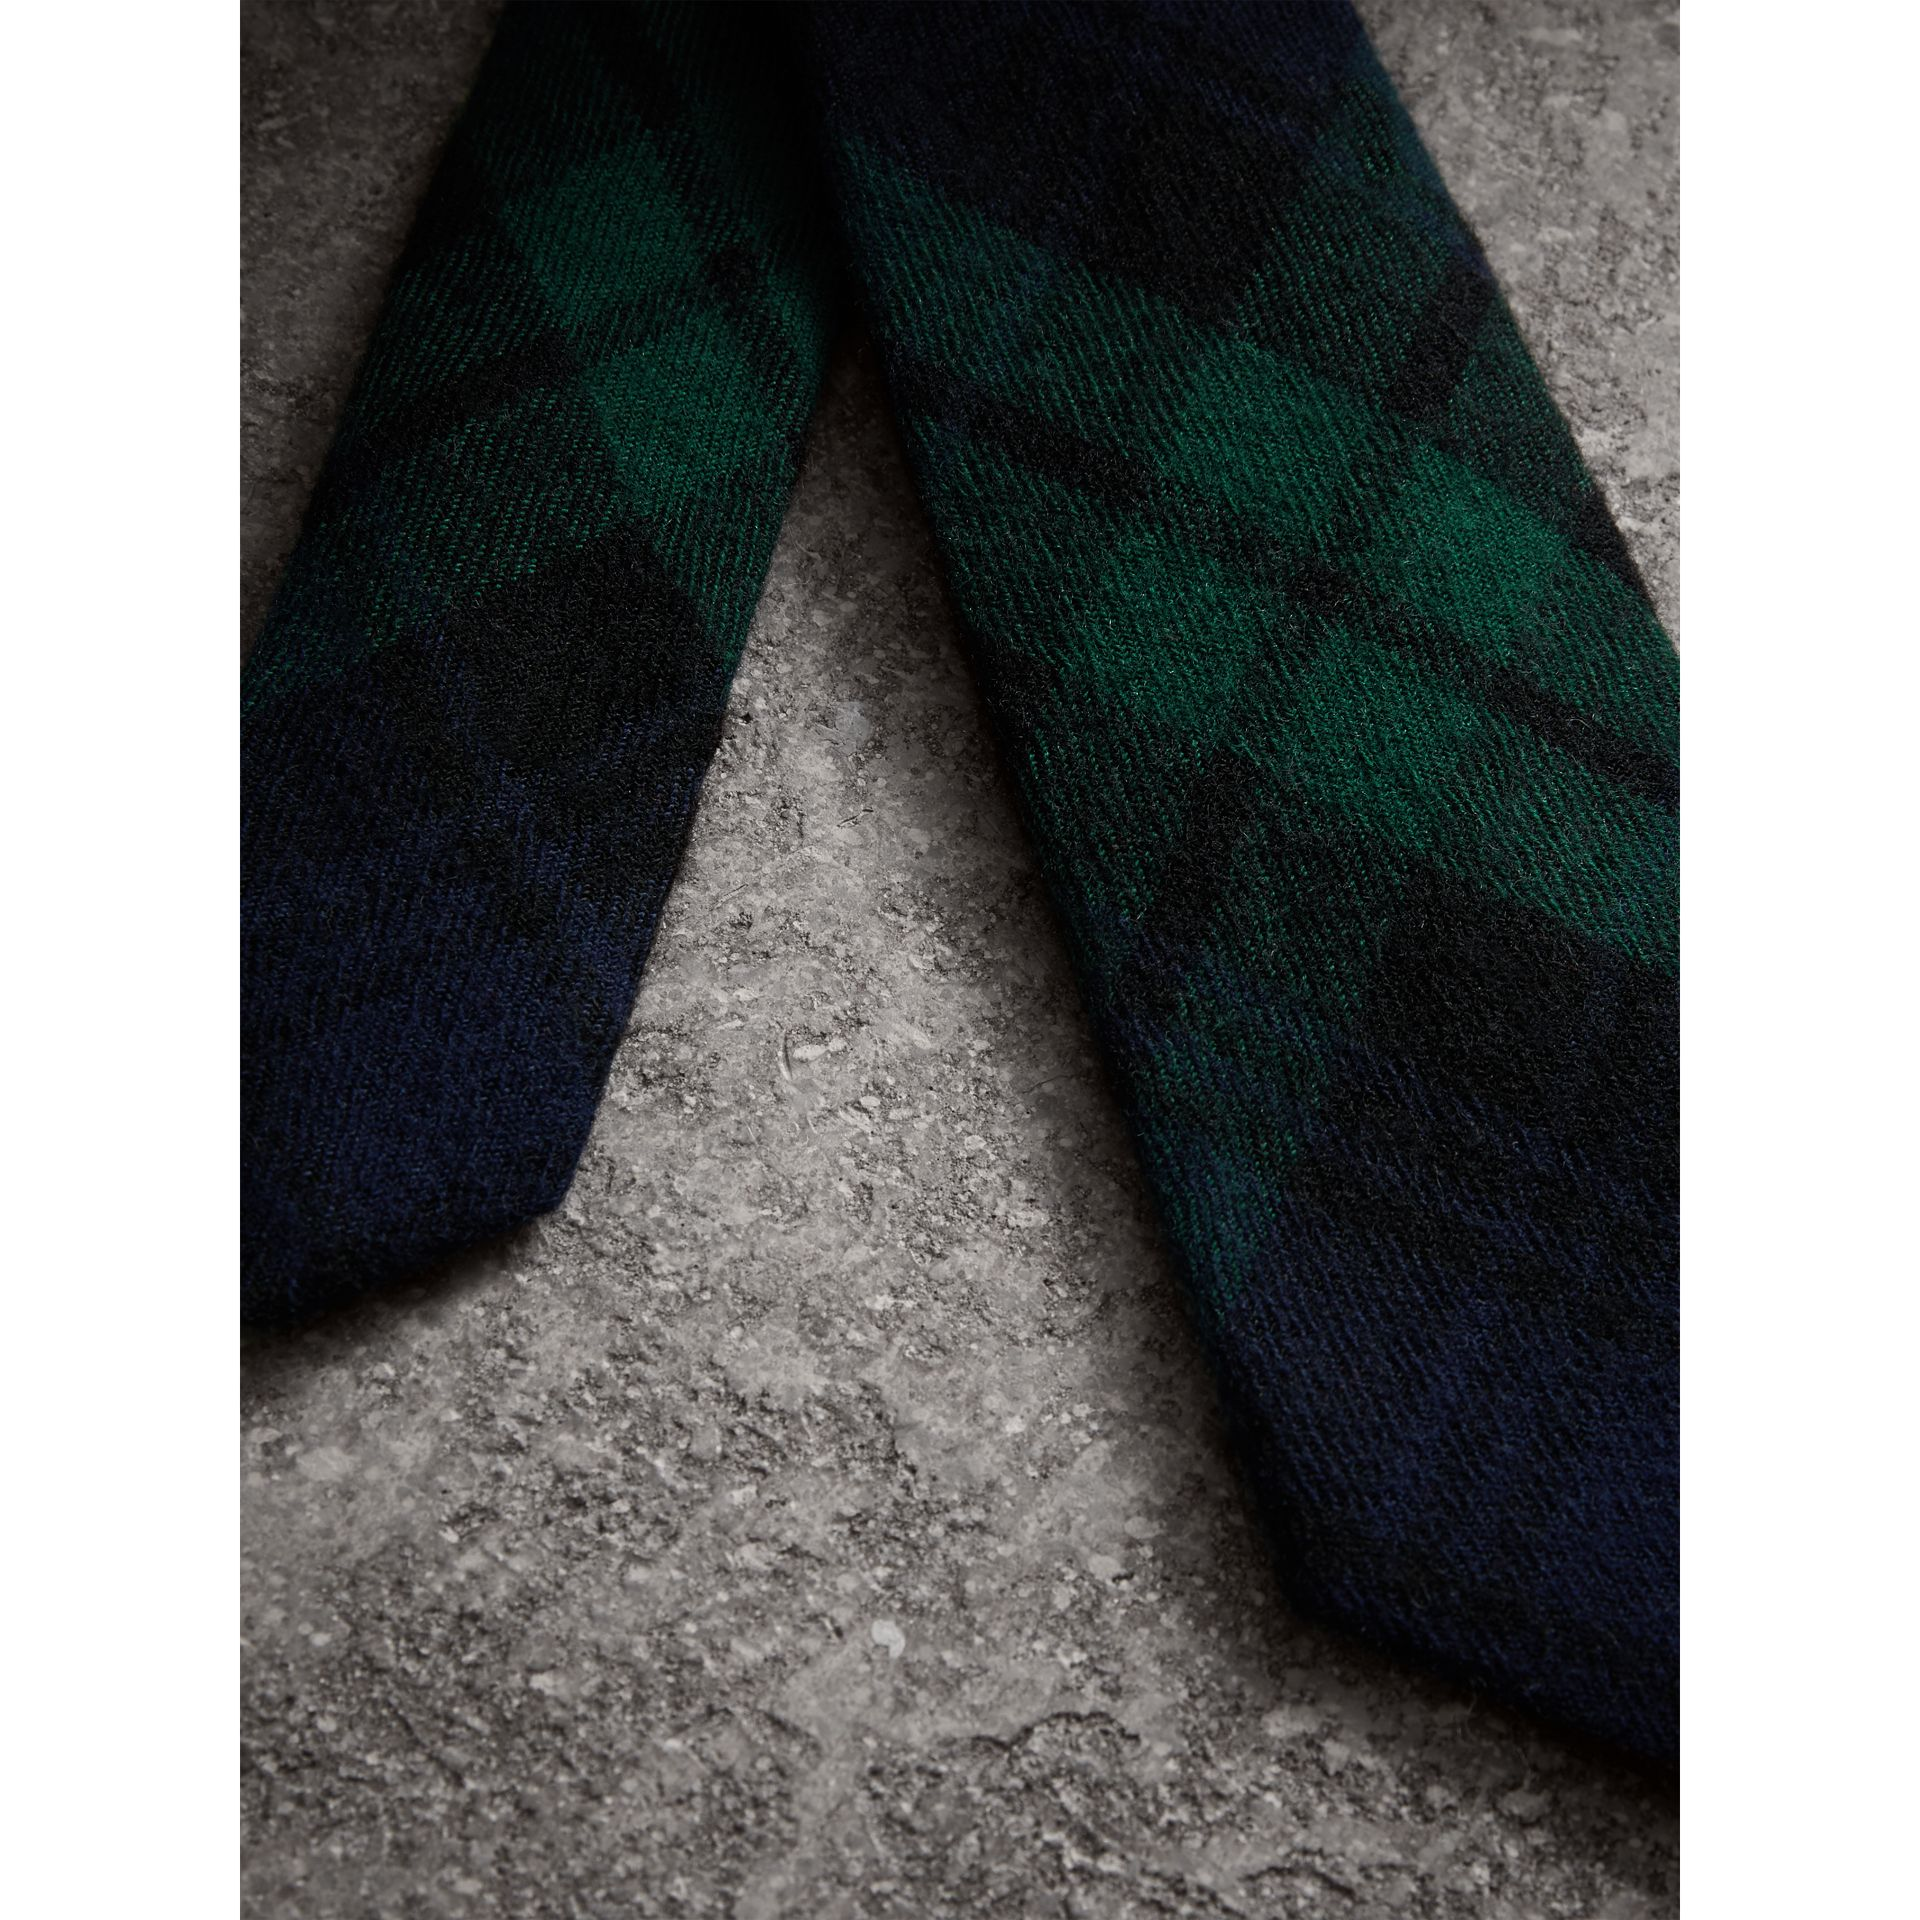 Slim Cut Tartan Wool Flannel Tie in Navy - Men | Burberry Canada - gallery image 1